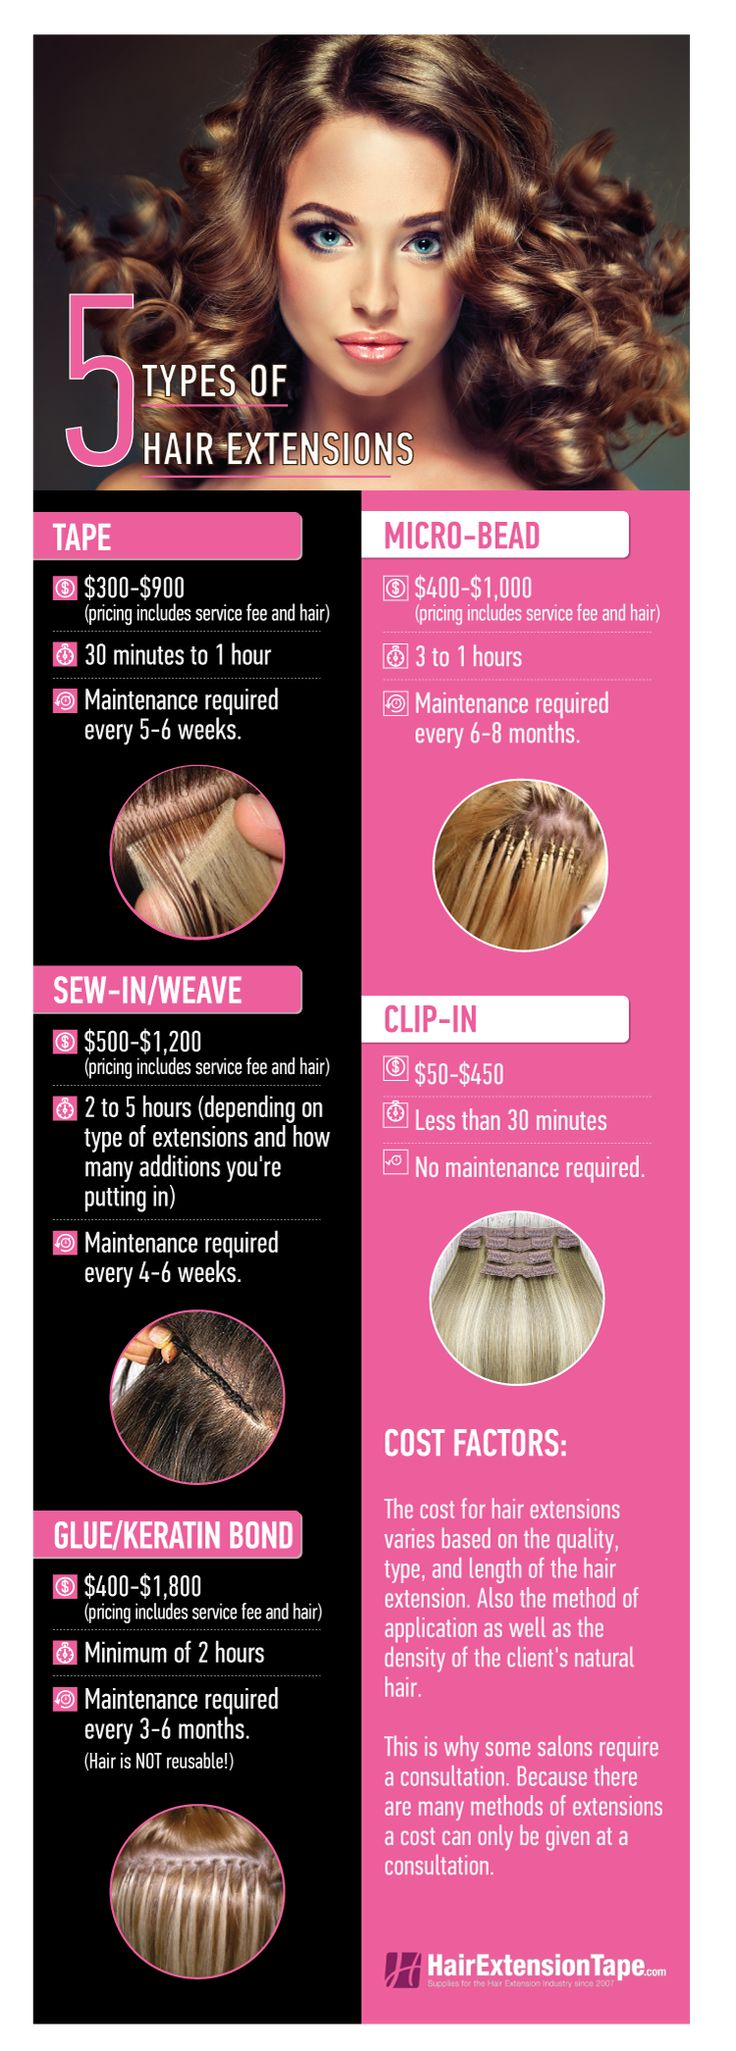 5 Types of Hair Extensions